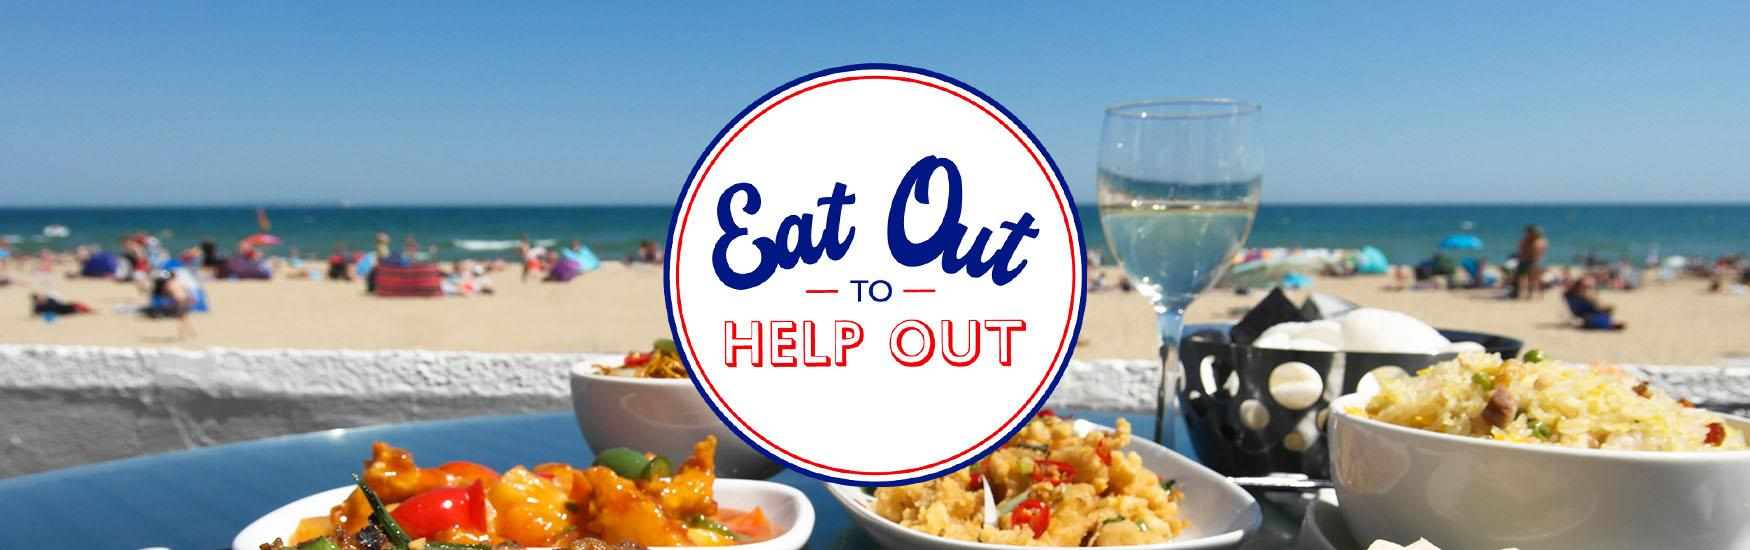 Eat out to help out header image with logo a delicious food in the background